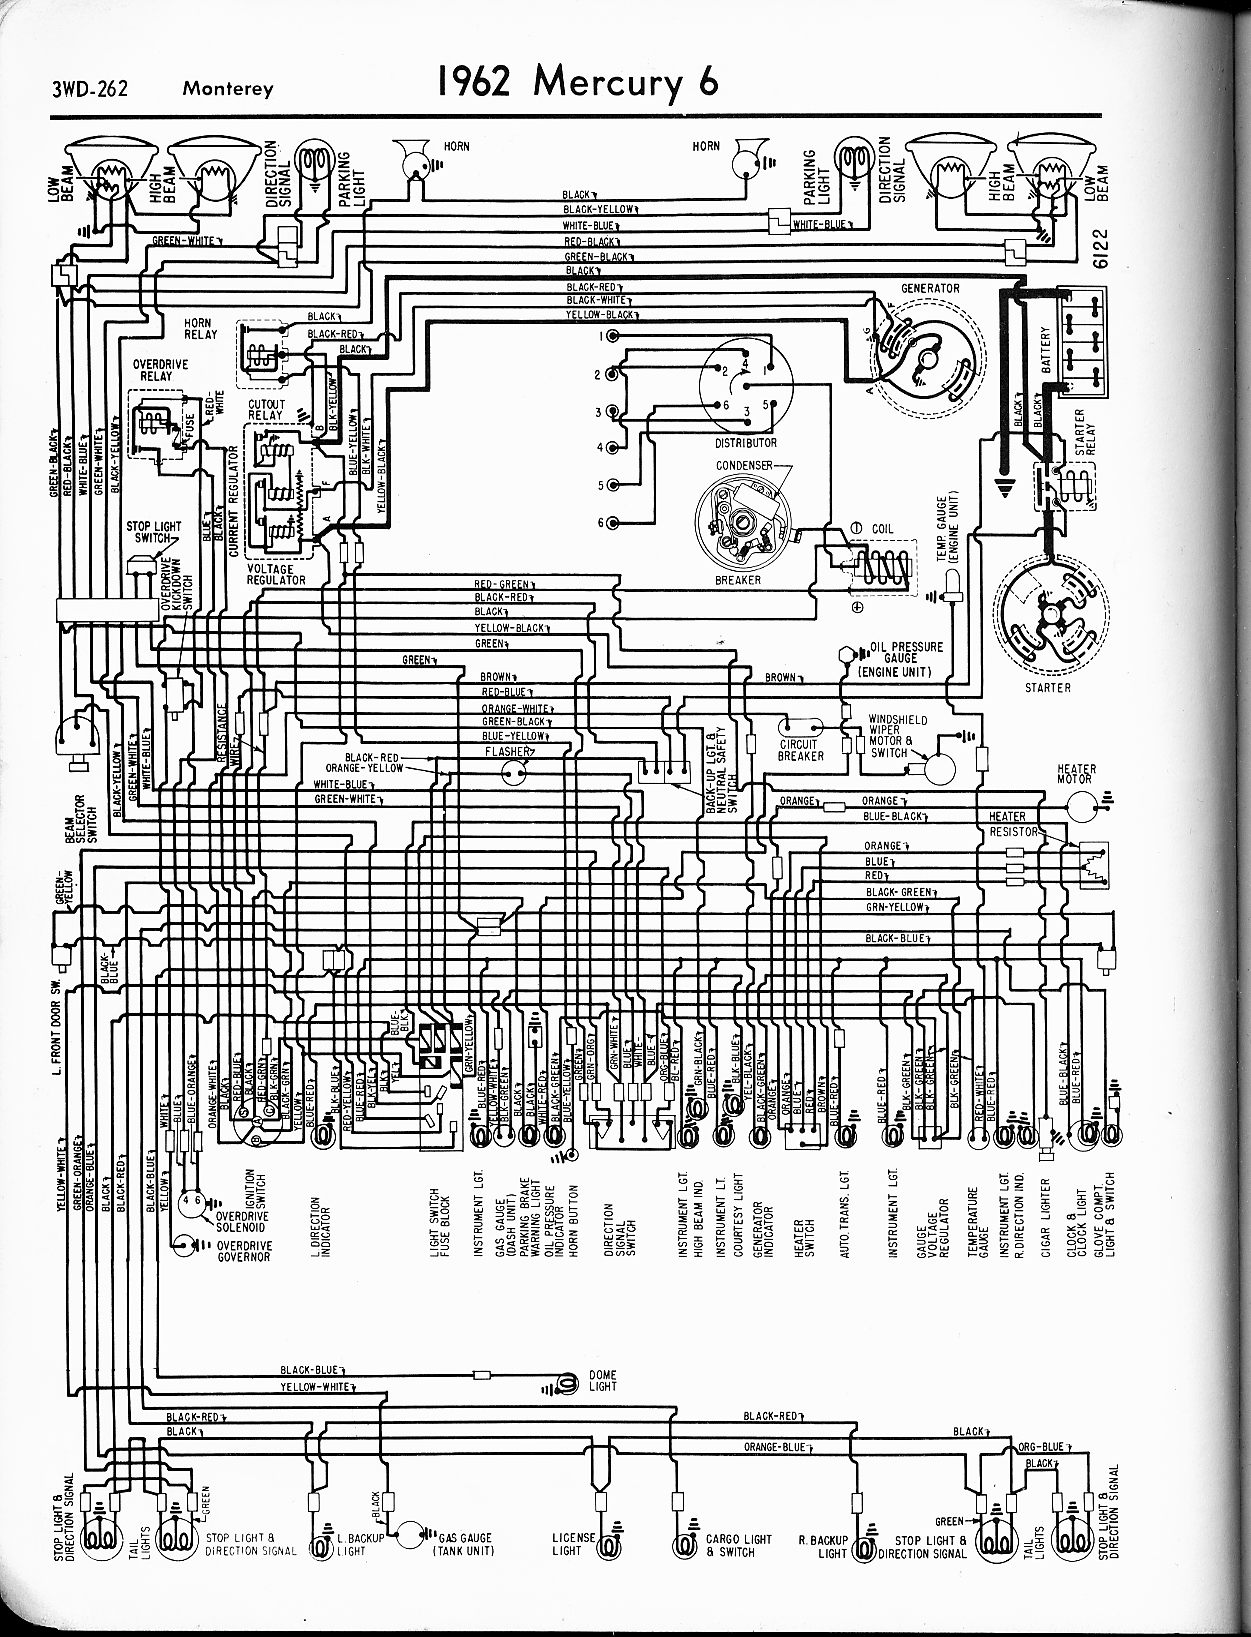 72 Ford Truck Ignition Switch Wir Wiring Library 1968 Nova Diagram Free Picture Schematic 69 Buick Radiator